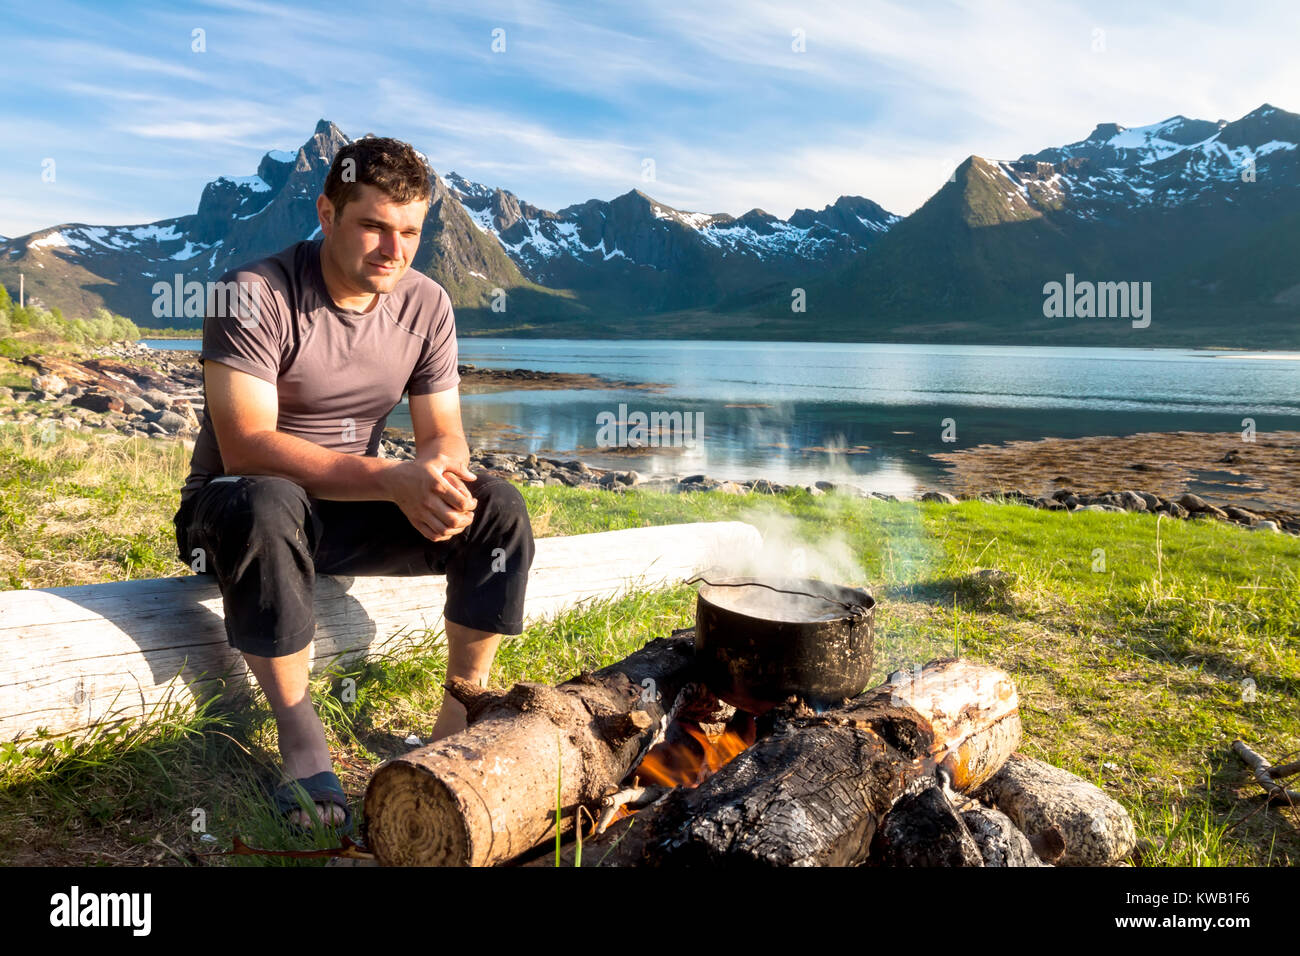 Man and campfire at sunset - Stock Image